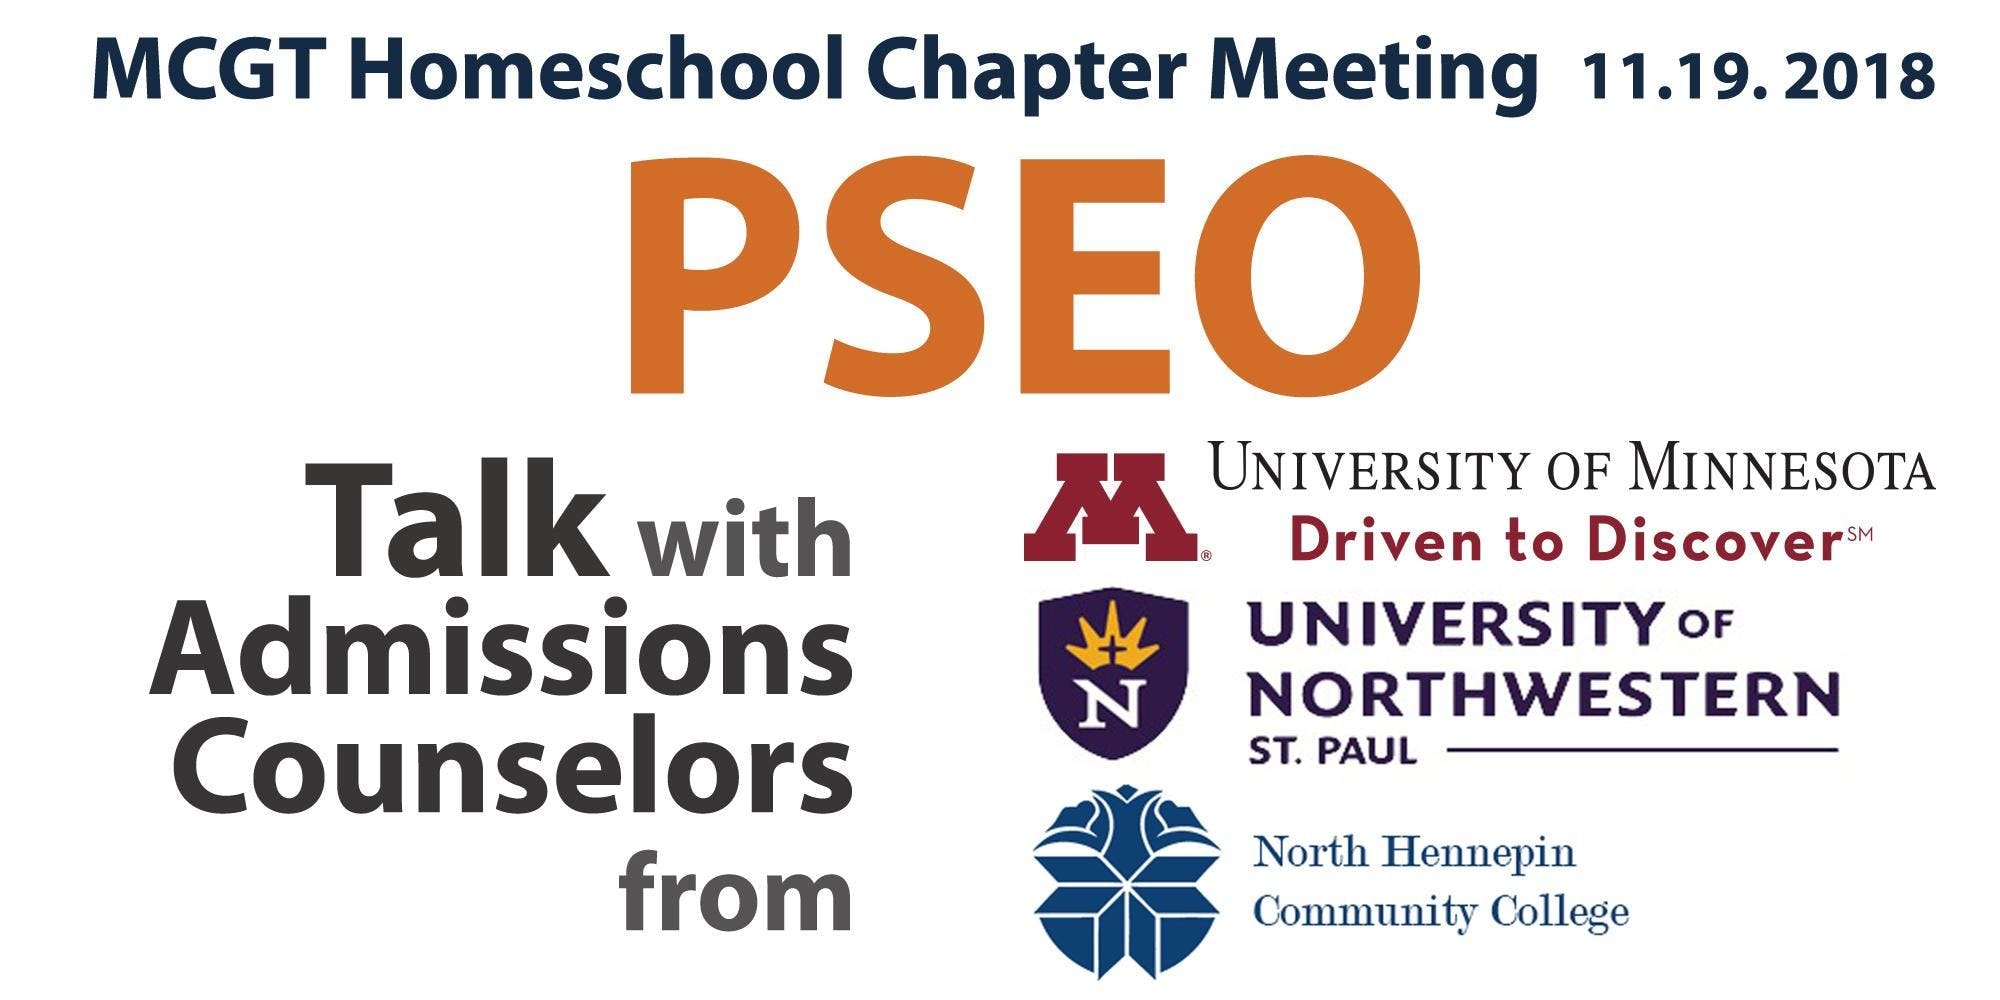 MCGT Homeschool Chapter Meeting-  PSEO Talk with Admissions Counselors